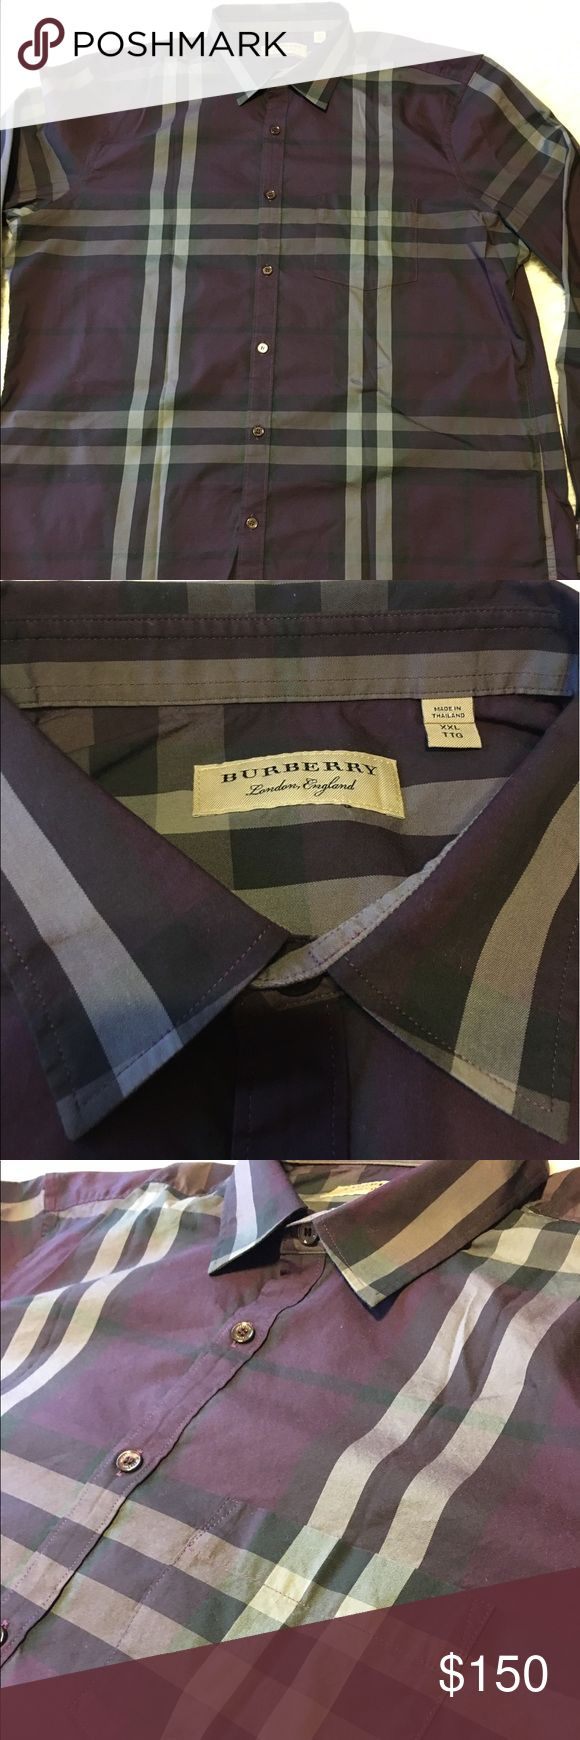 New burberry shirt for men XXL New without tags never worn burberry shirt for men size XXL purple color 100% cotton,Authentic, original price is 325$ Burberry Shirts Casual Button Down Shirts